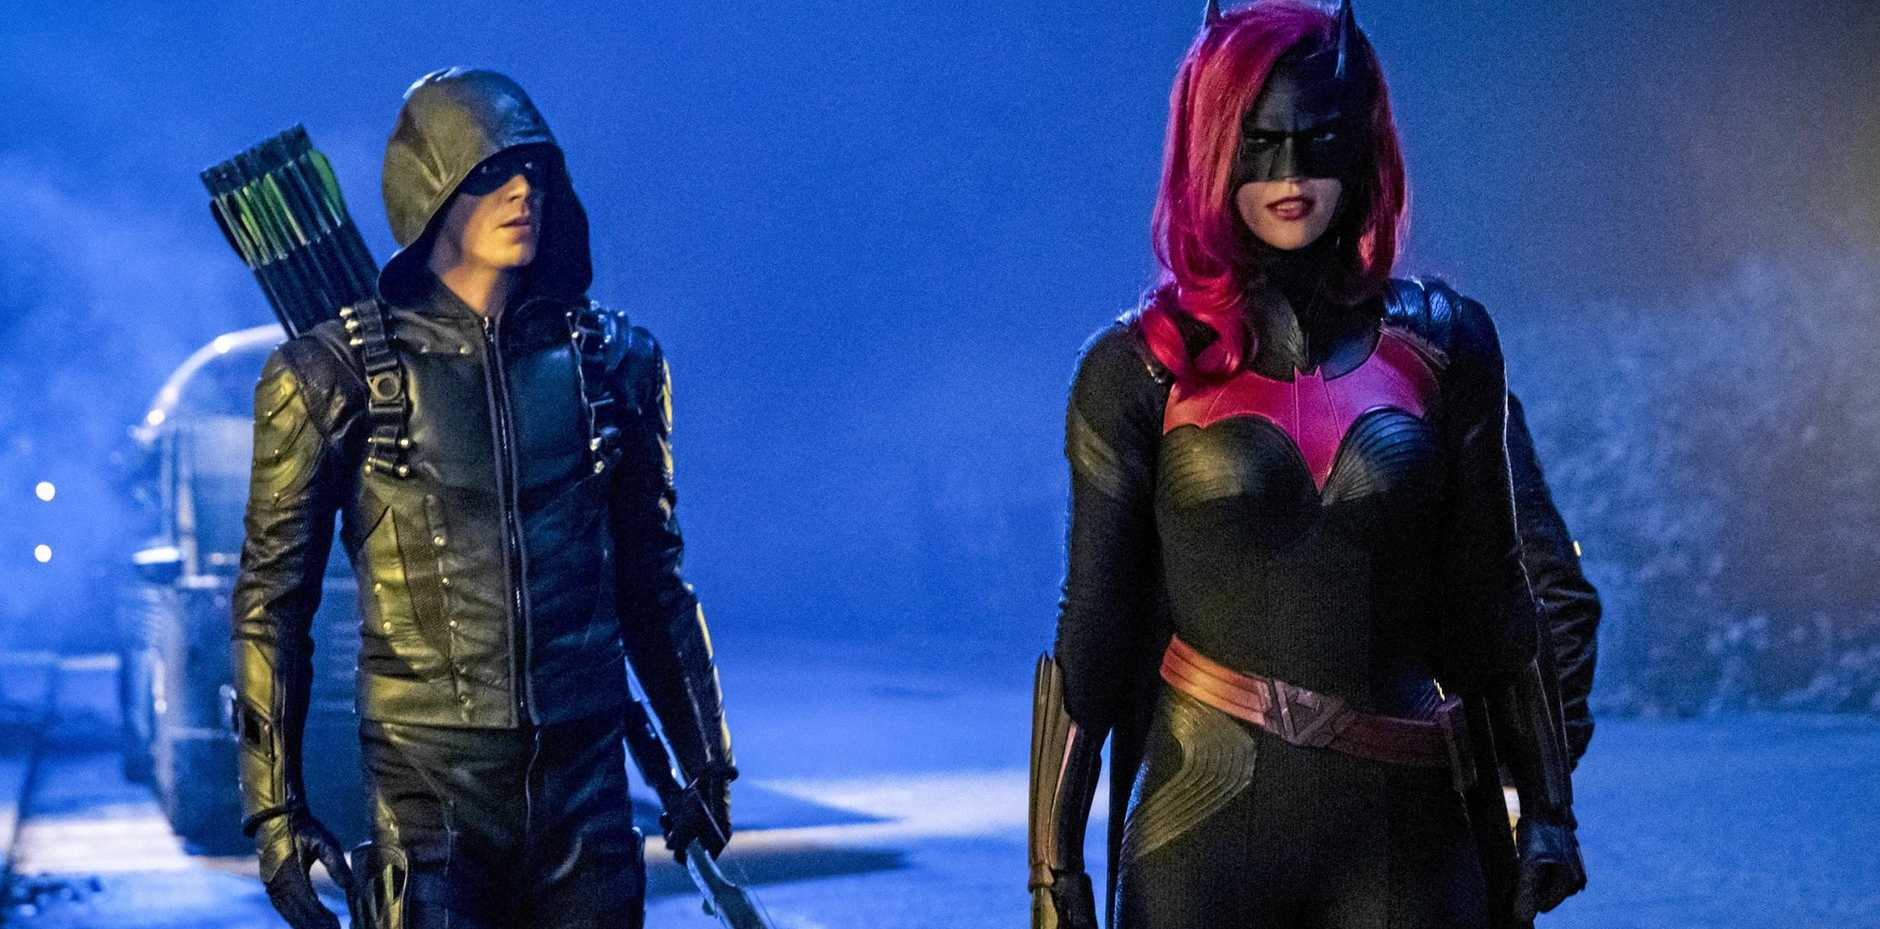 Grant Gustin as Oliver Queen/Green Arrow and Ruby Rose as Kate Kane/Batwoman in a scene from Arrow's DC Crossover episode Elseworlds Part 2.